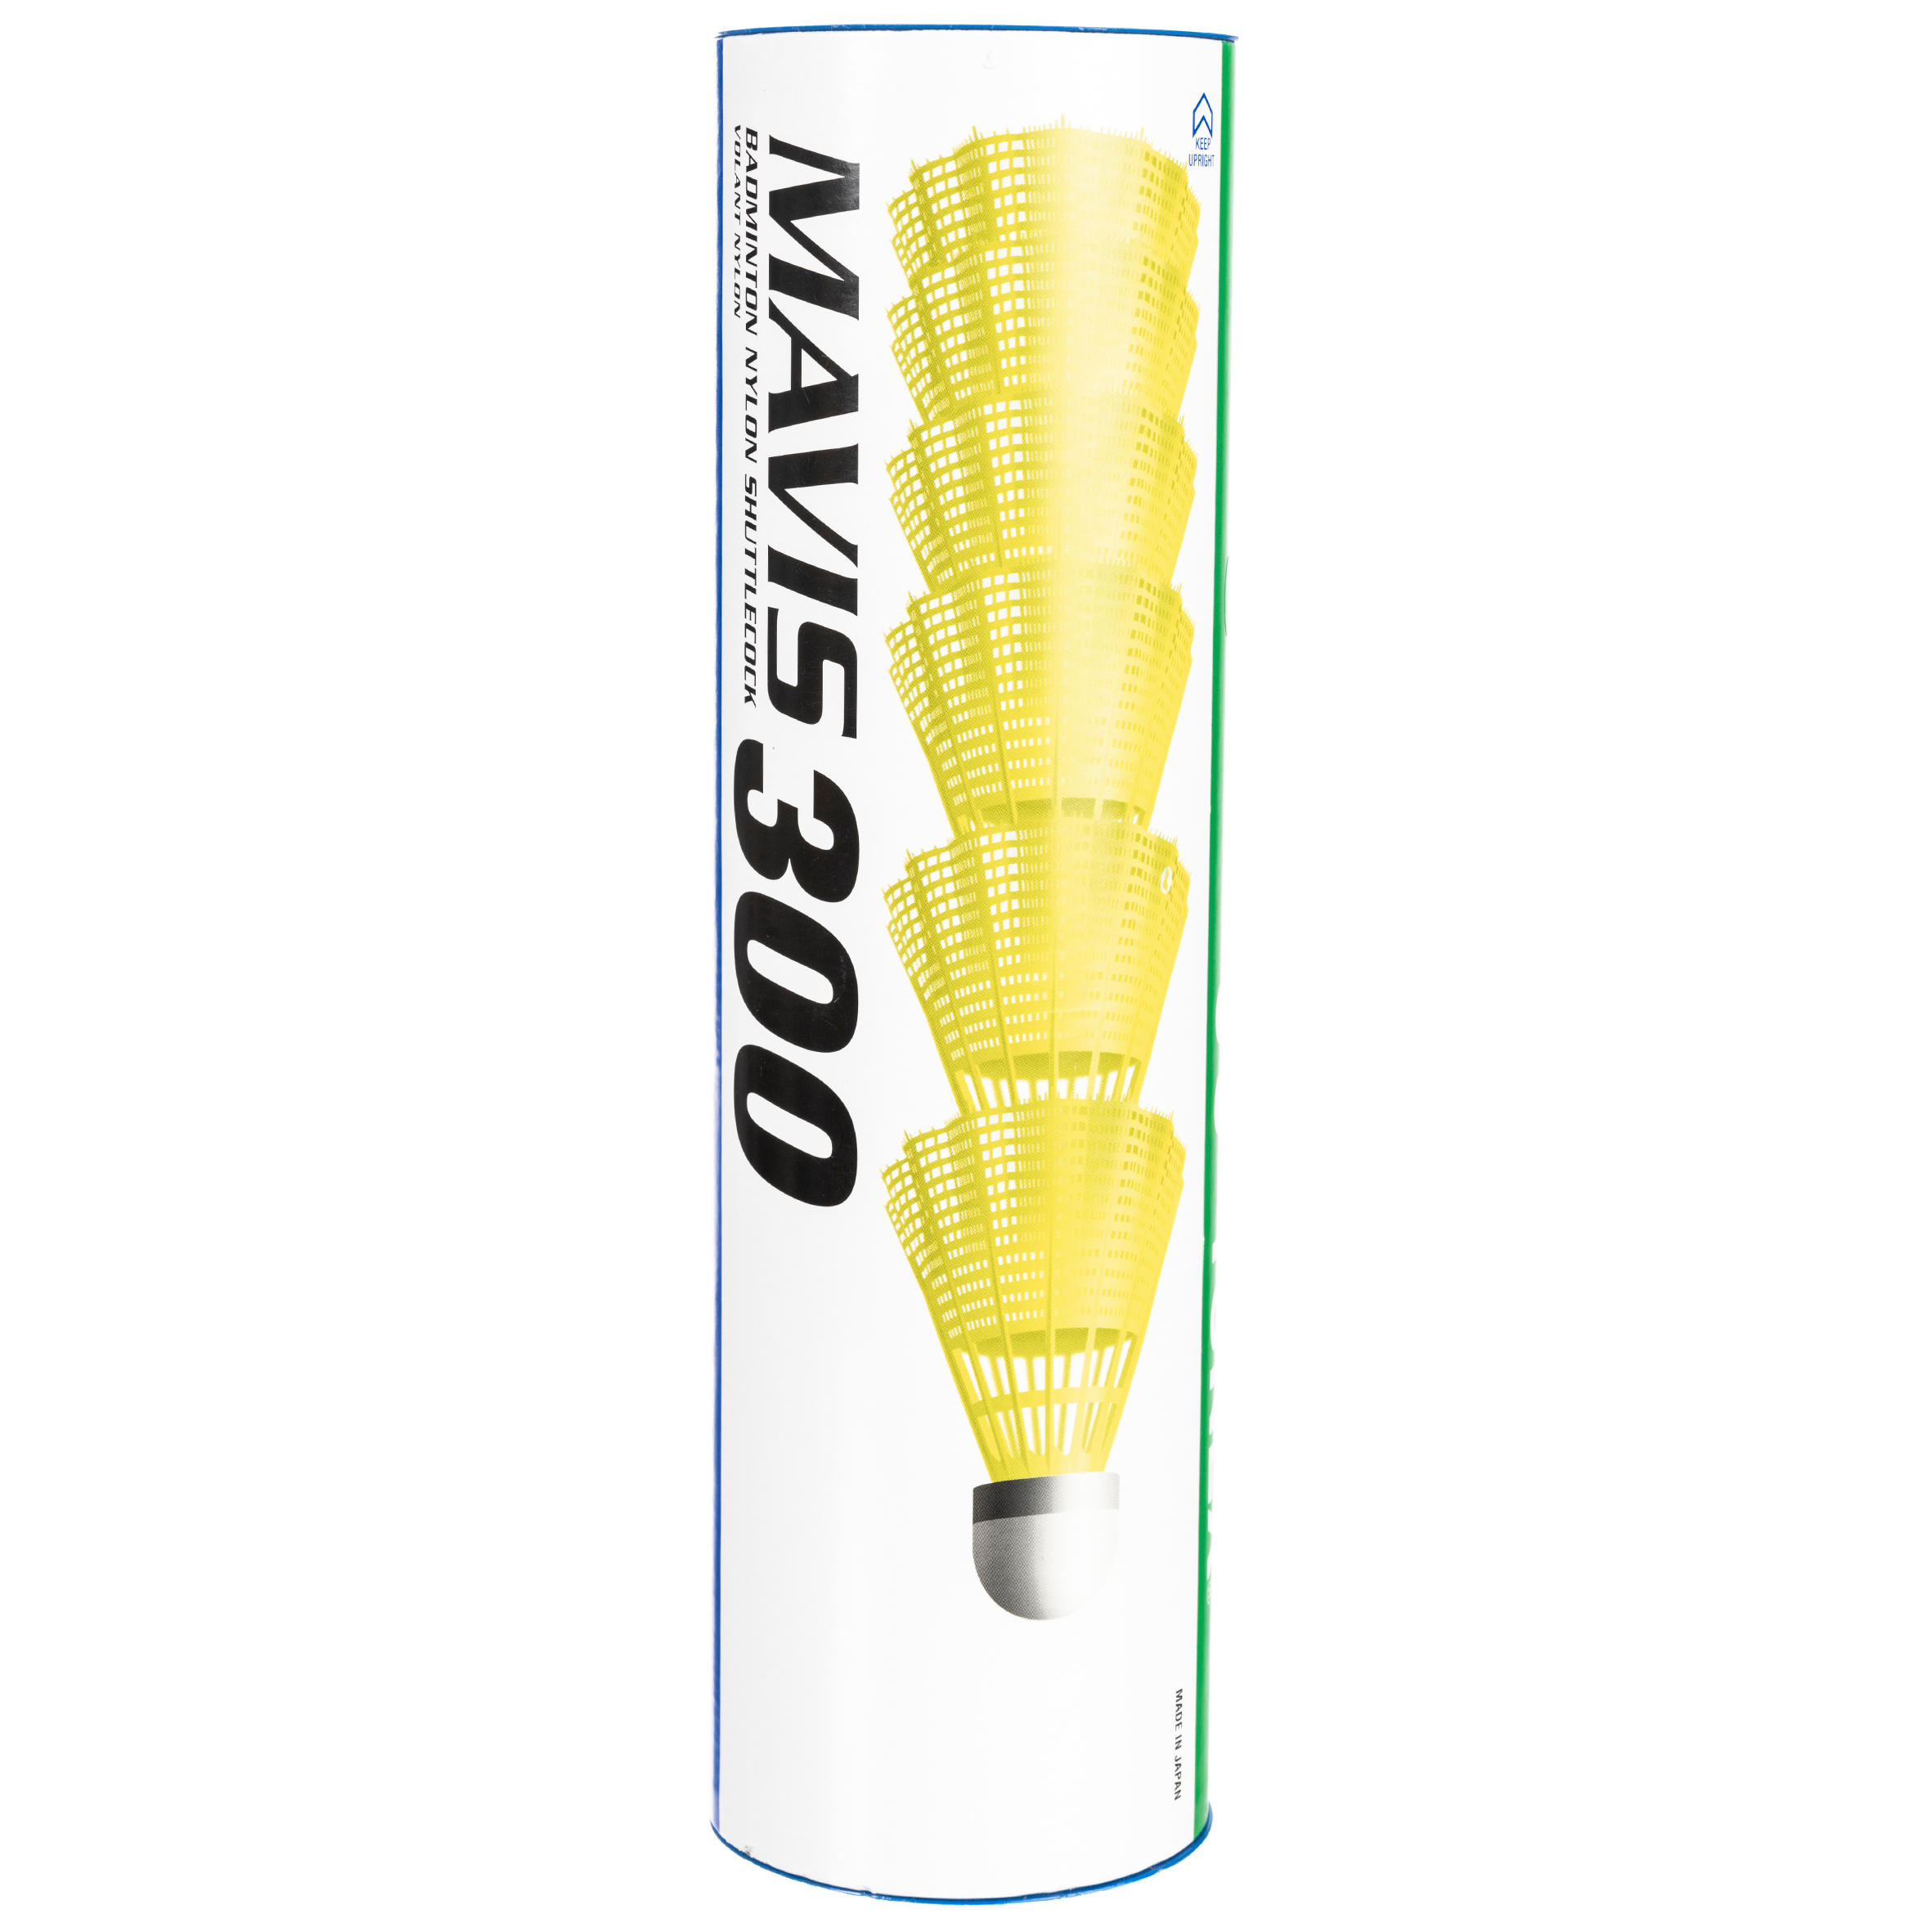 Yonex Mavis 10 Shuttlecocks Yellow 6 Pack